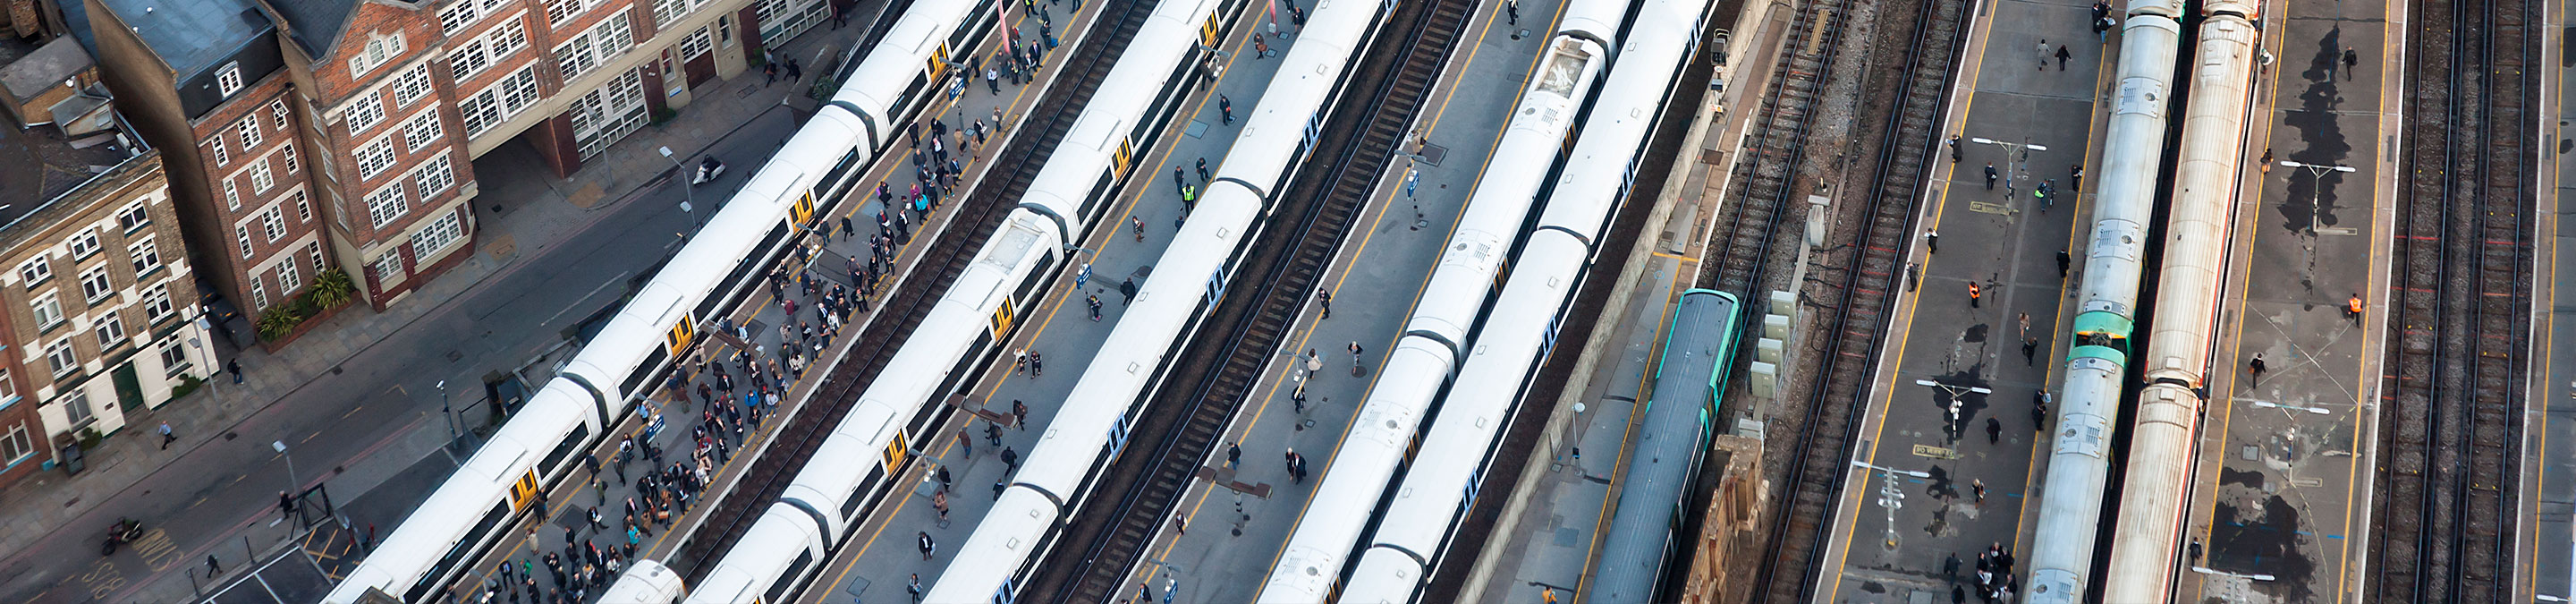 a train full of people